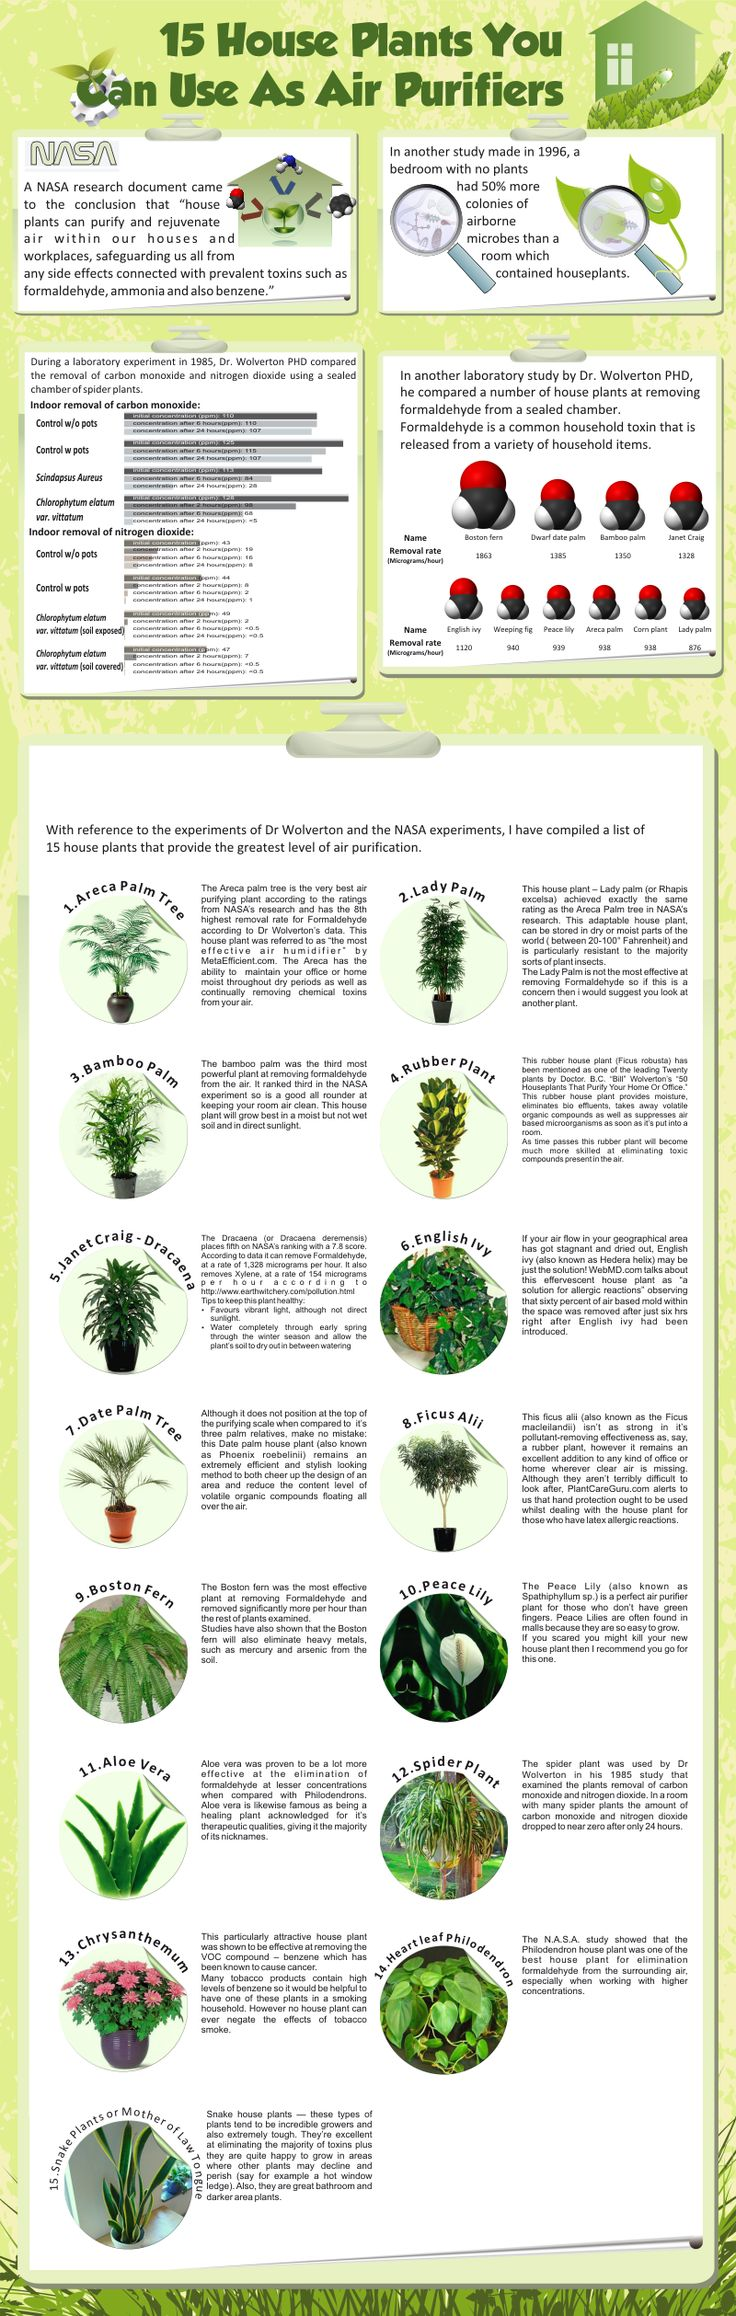 32 best images about air purifying plants on pinterest for Indoor gardening diana yakeley